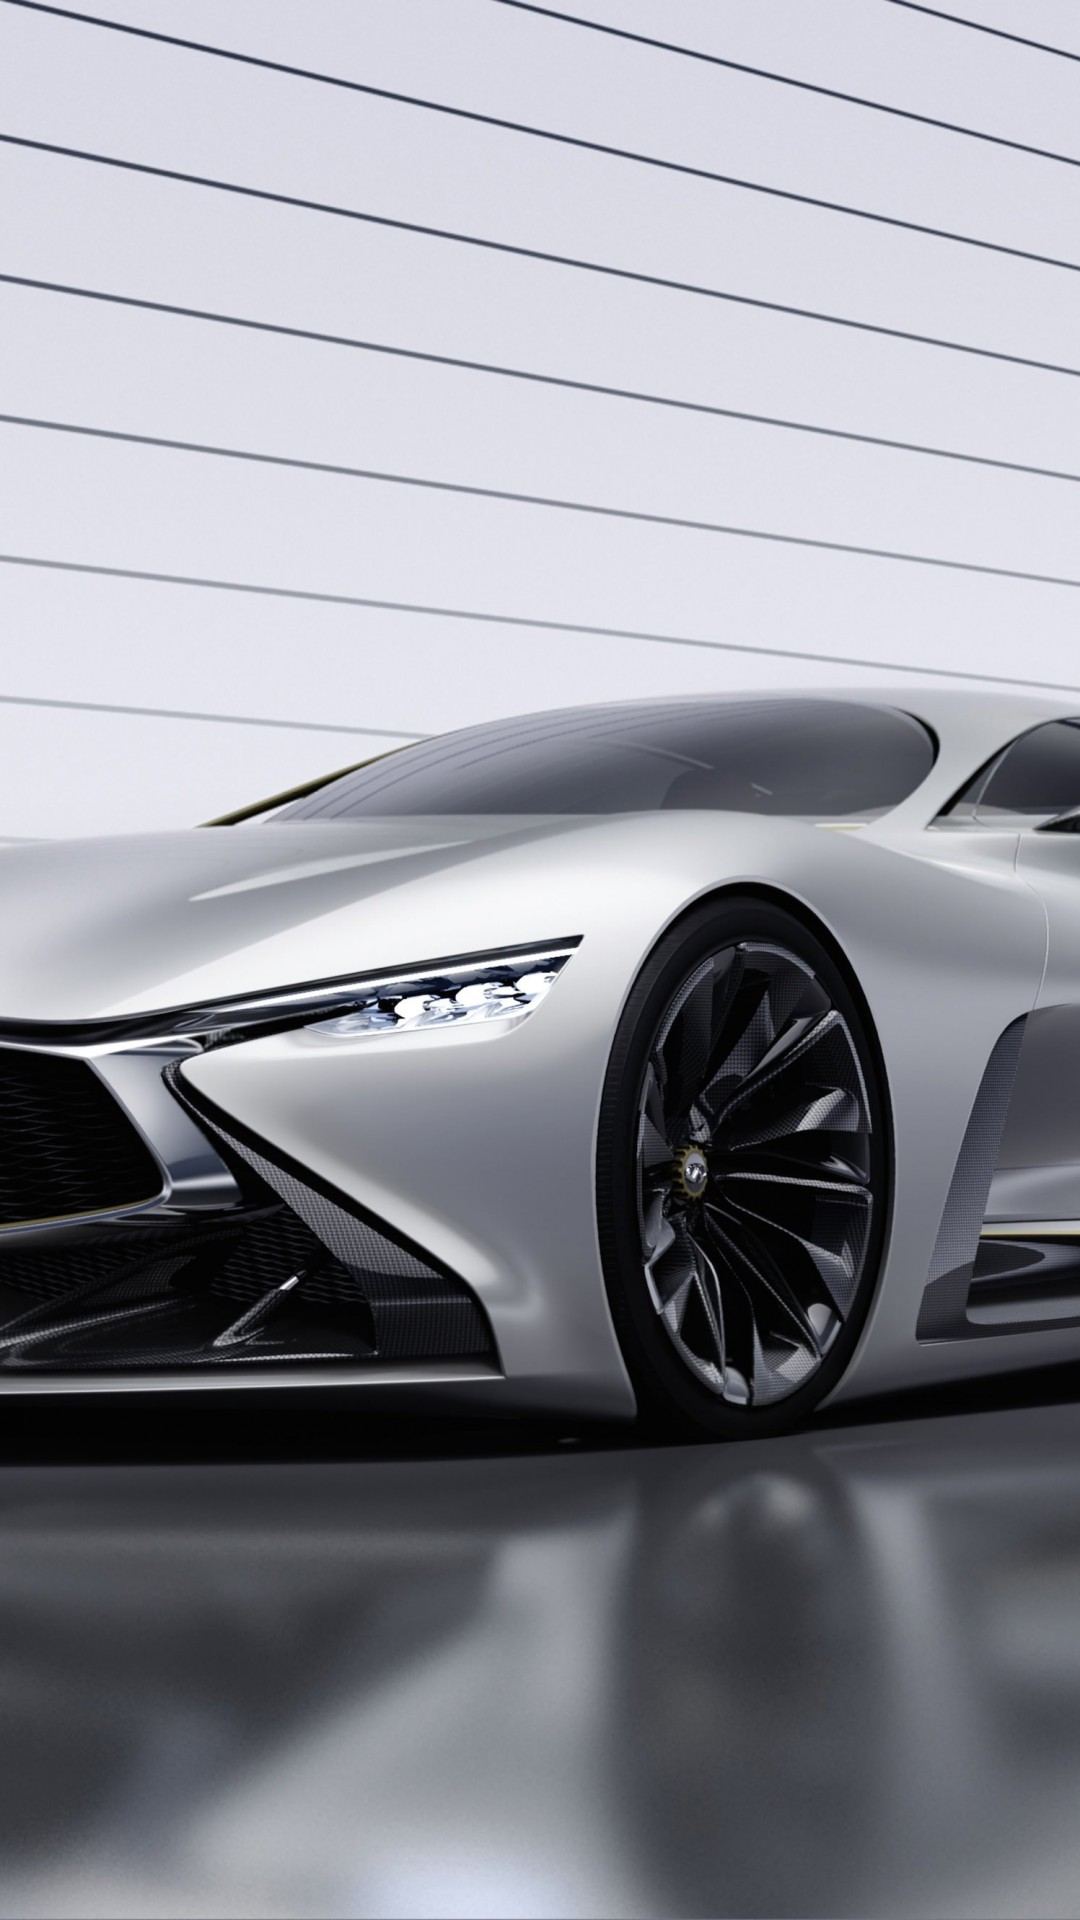 Infiniti Vision GT Concept Wallpaper for SONY Xperia Z2